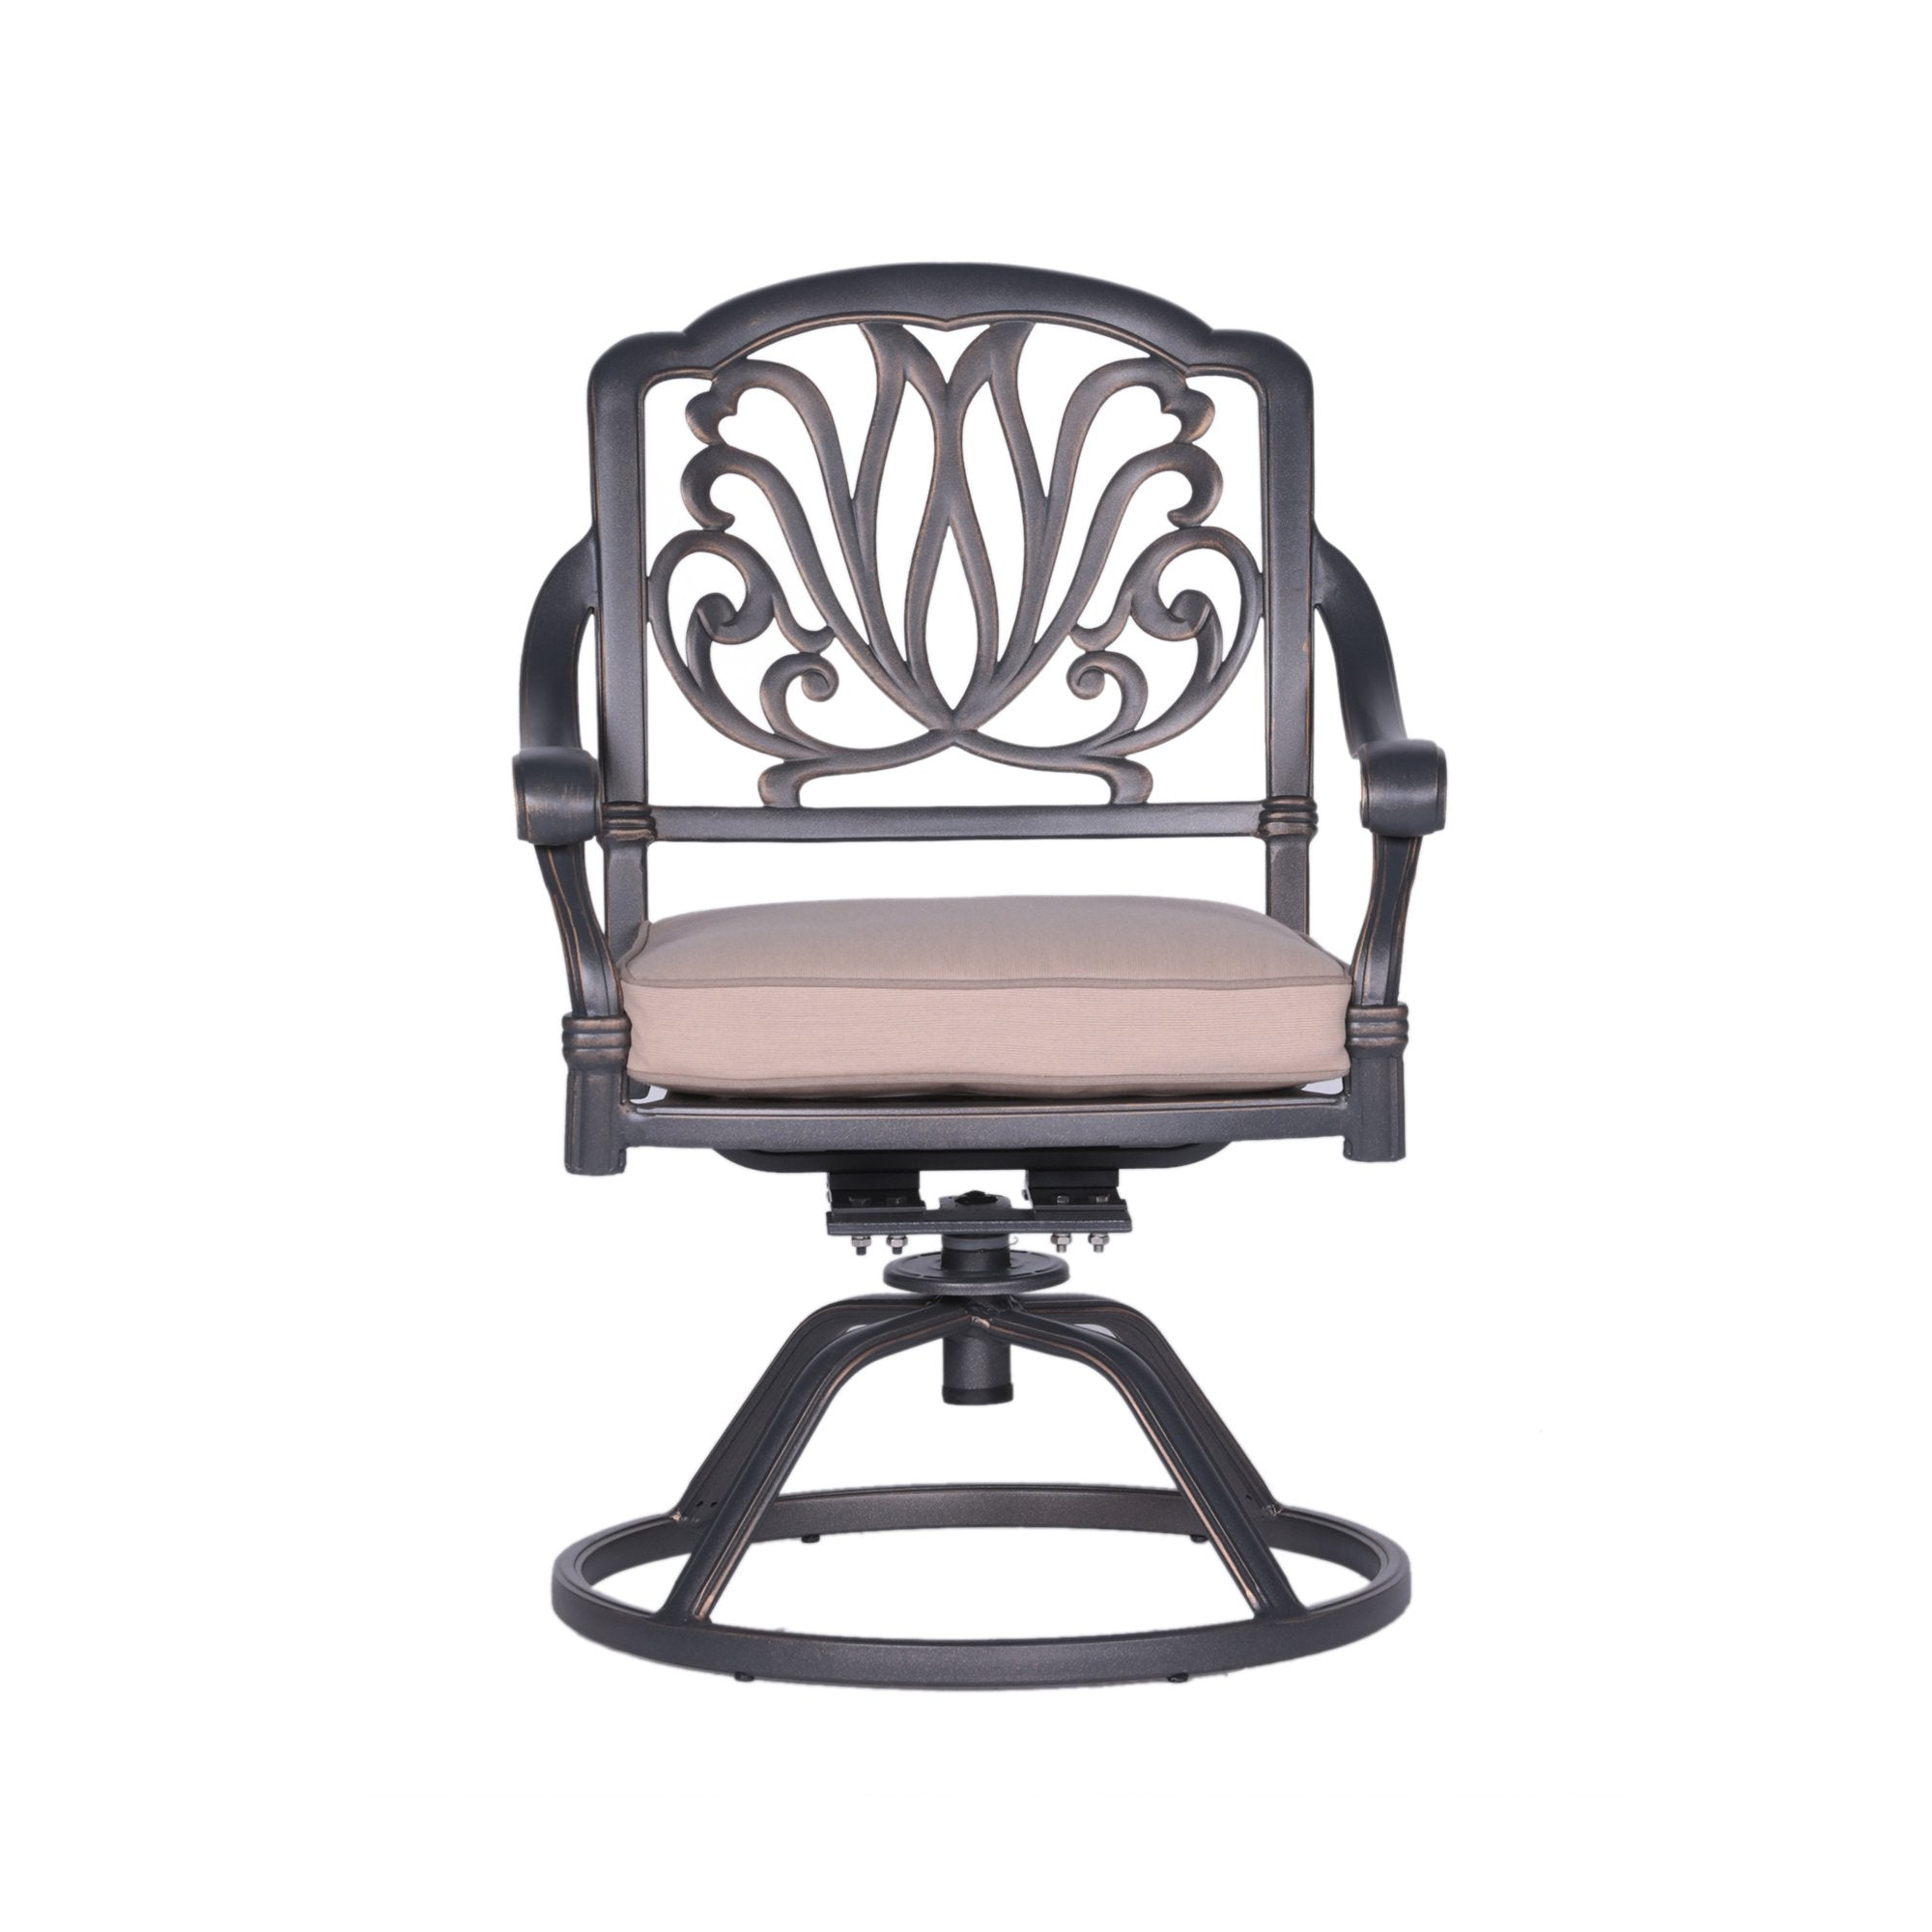 Fabulous Ipatio Athens Dining Swivel Rocker Chairs With Cushion Alphanode Cool Chair Designs And Ideas Alphanodeonline